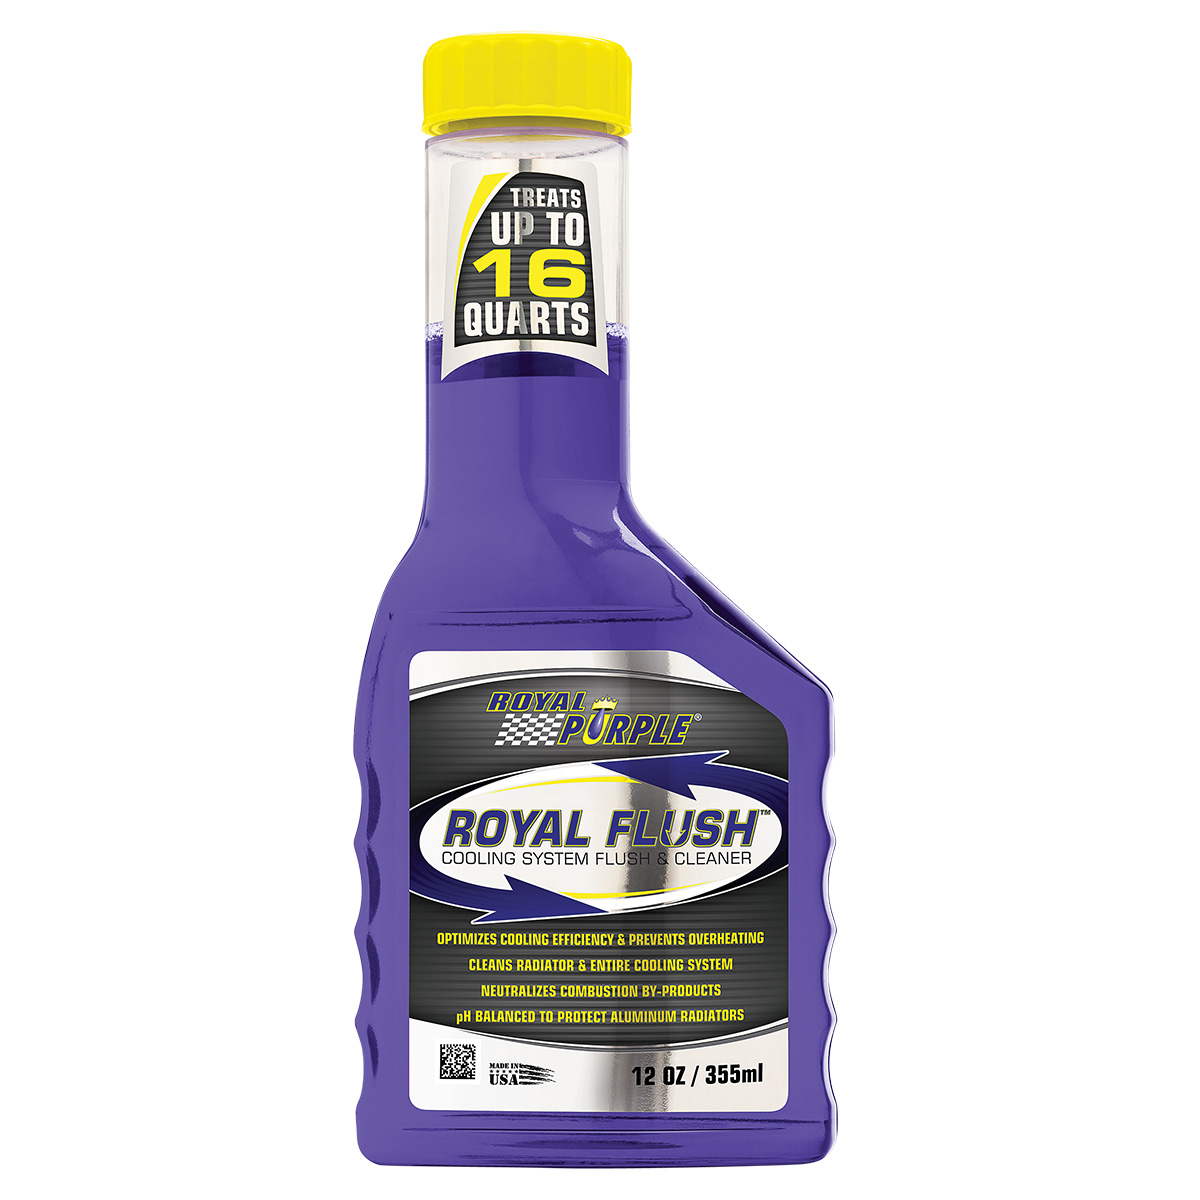 Royal Purple Royal Flush Cooling System Flush And Cleaner